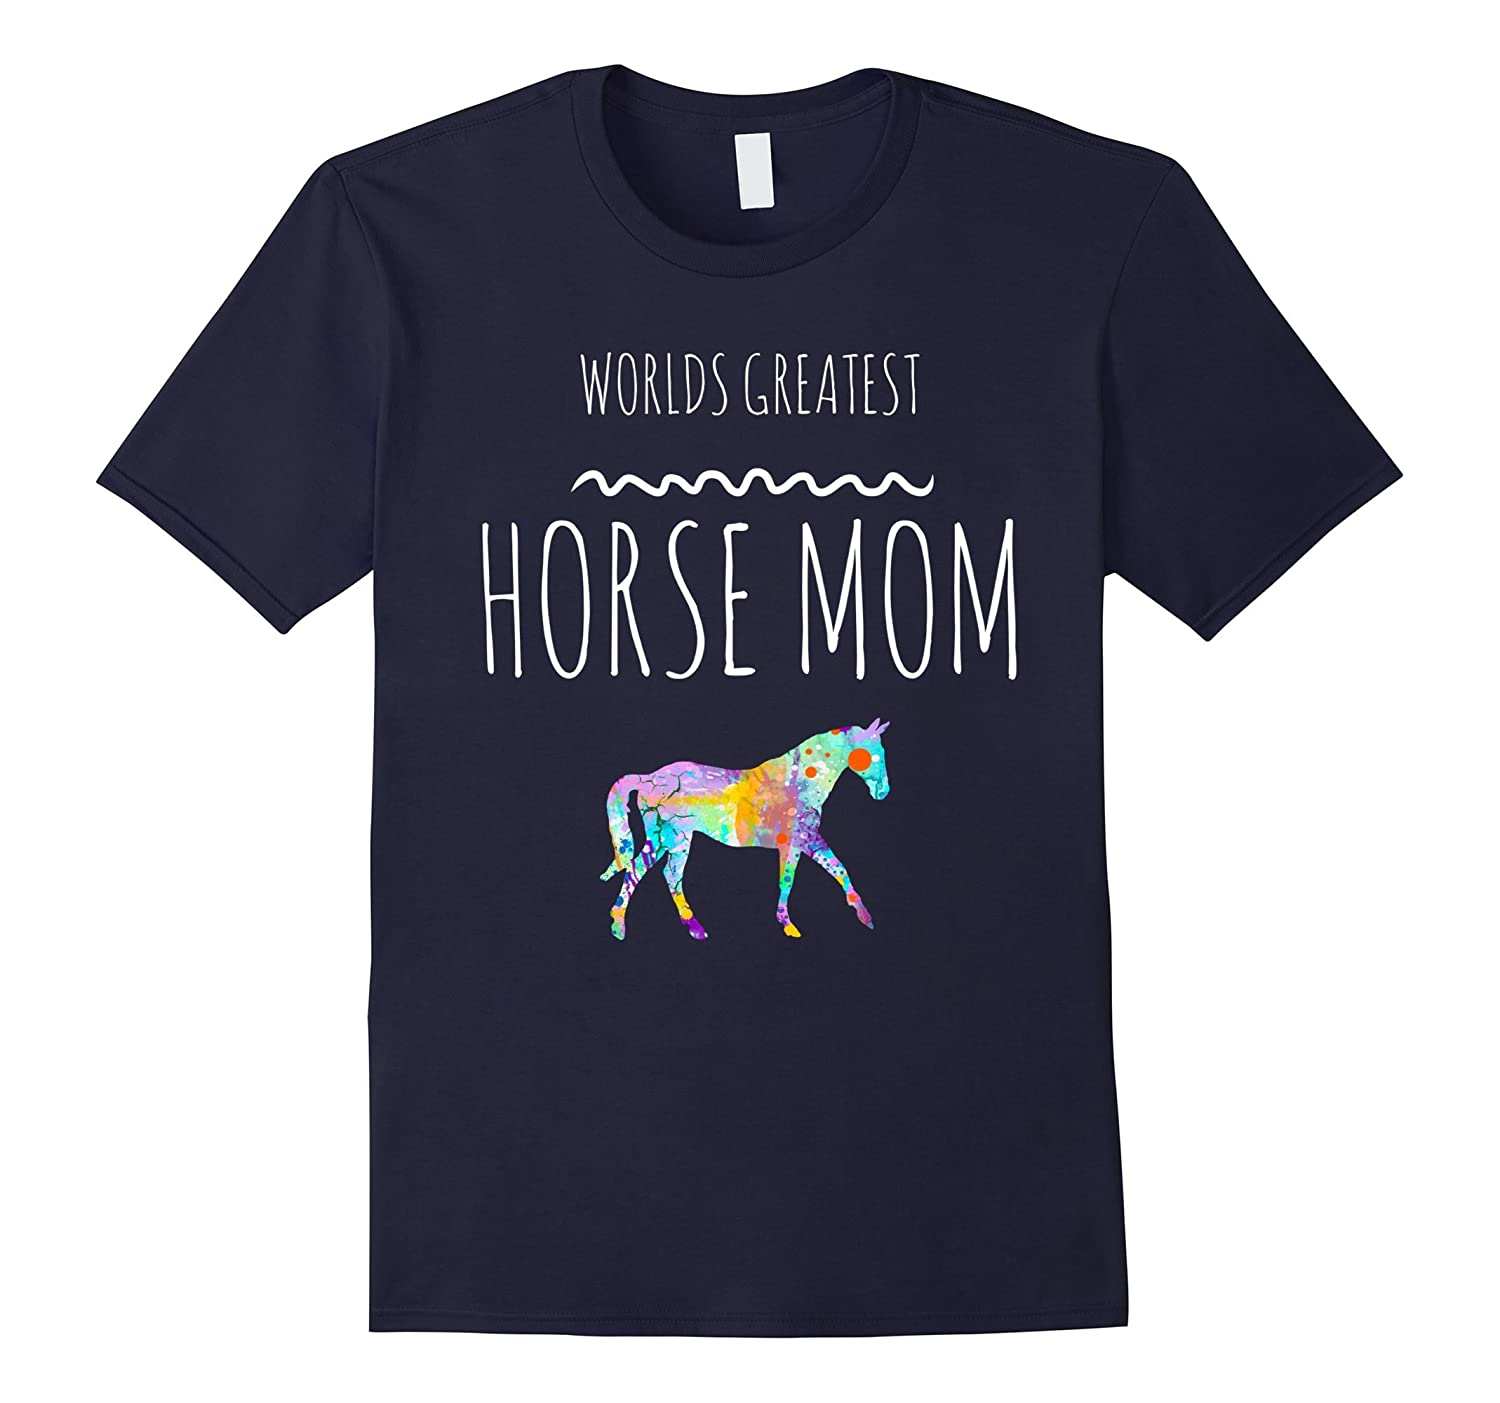 Worlds Greatest Horse Mom TShirt Graphic Love Horses Tee-CL